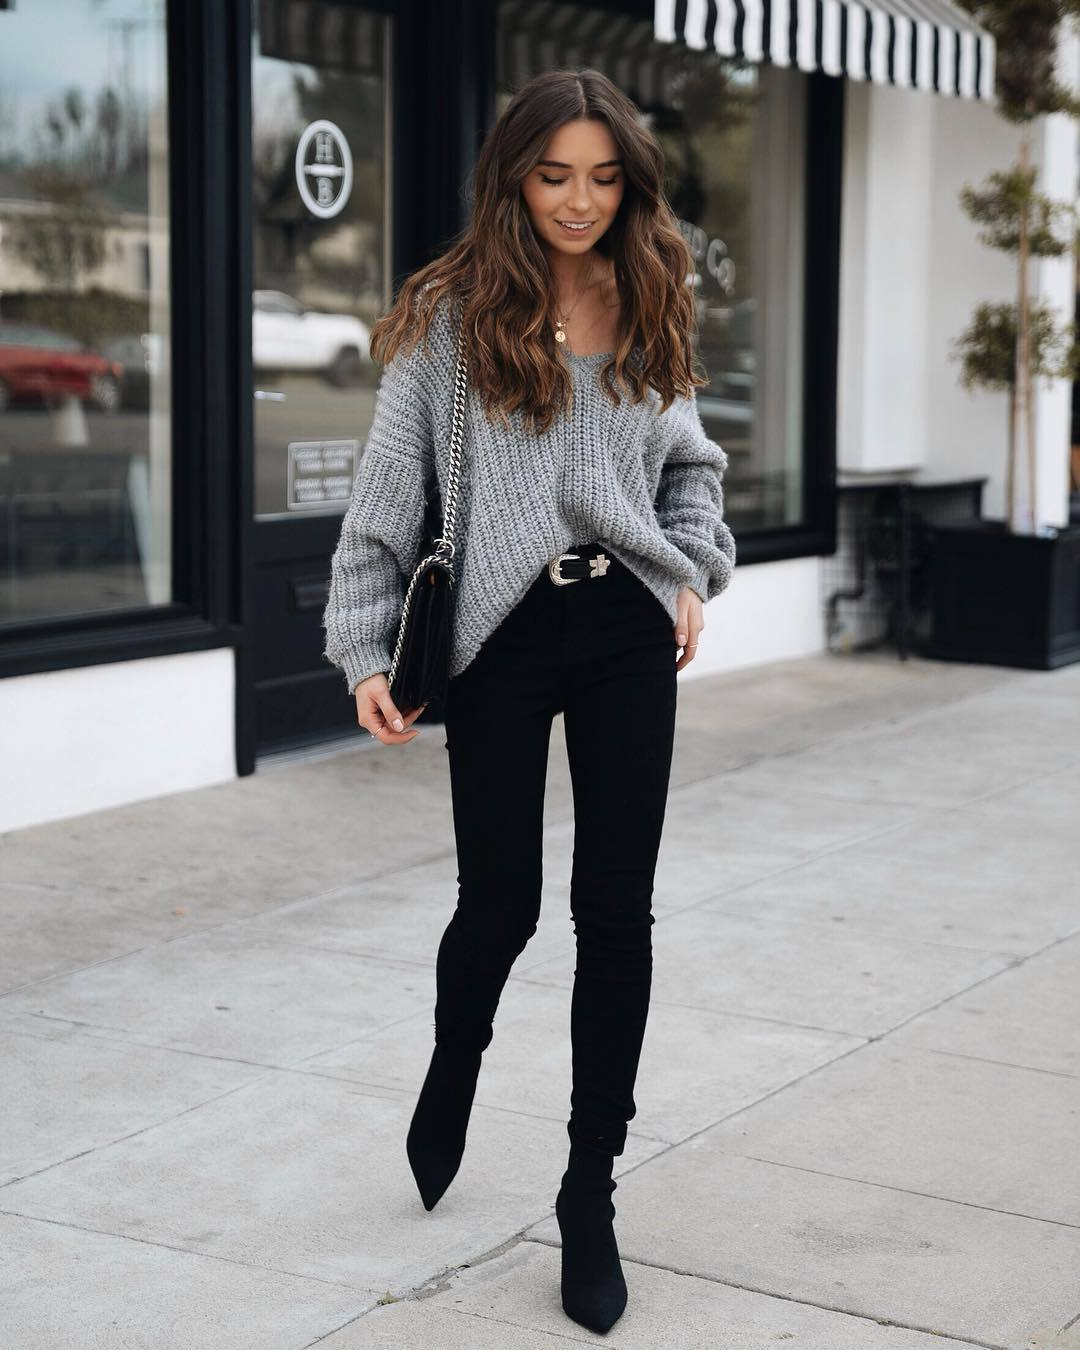 jeans, black skinny jeans, high waisted jeans, black boots